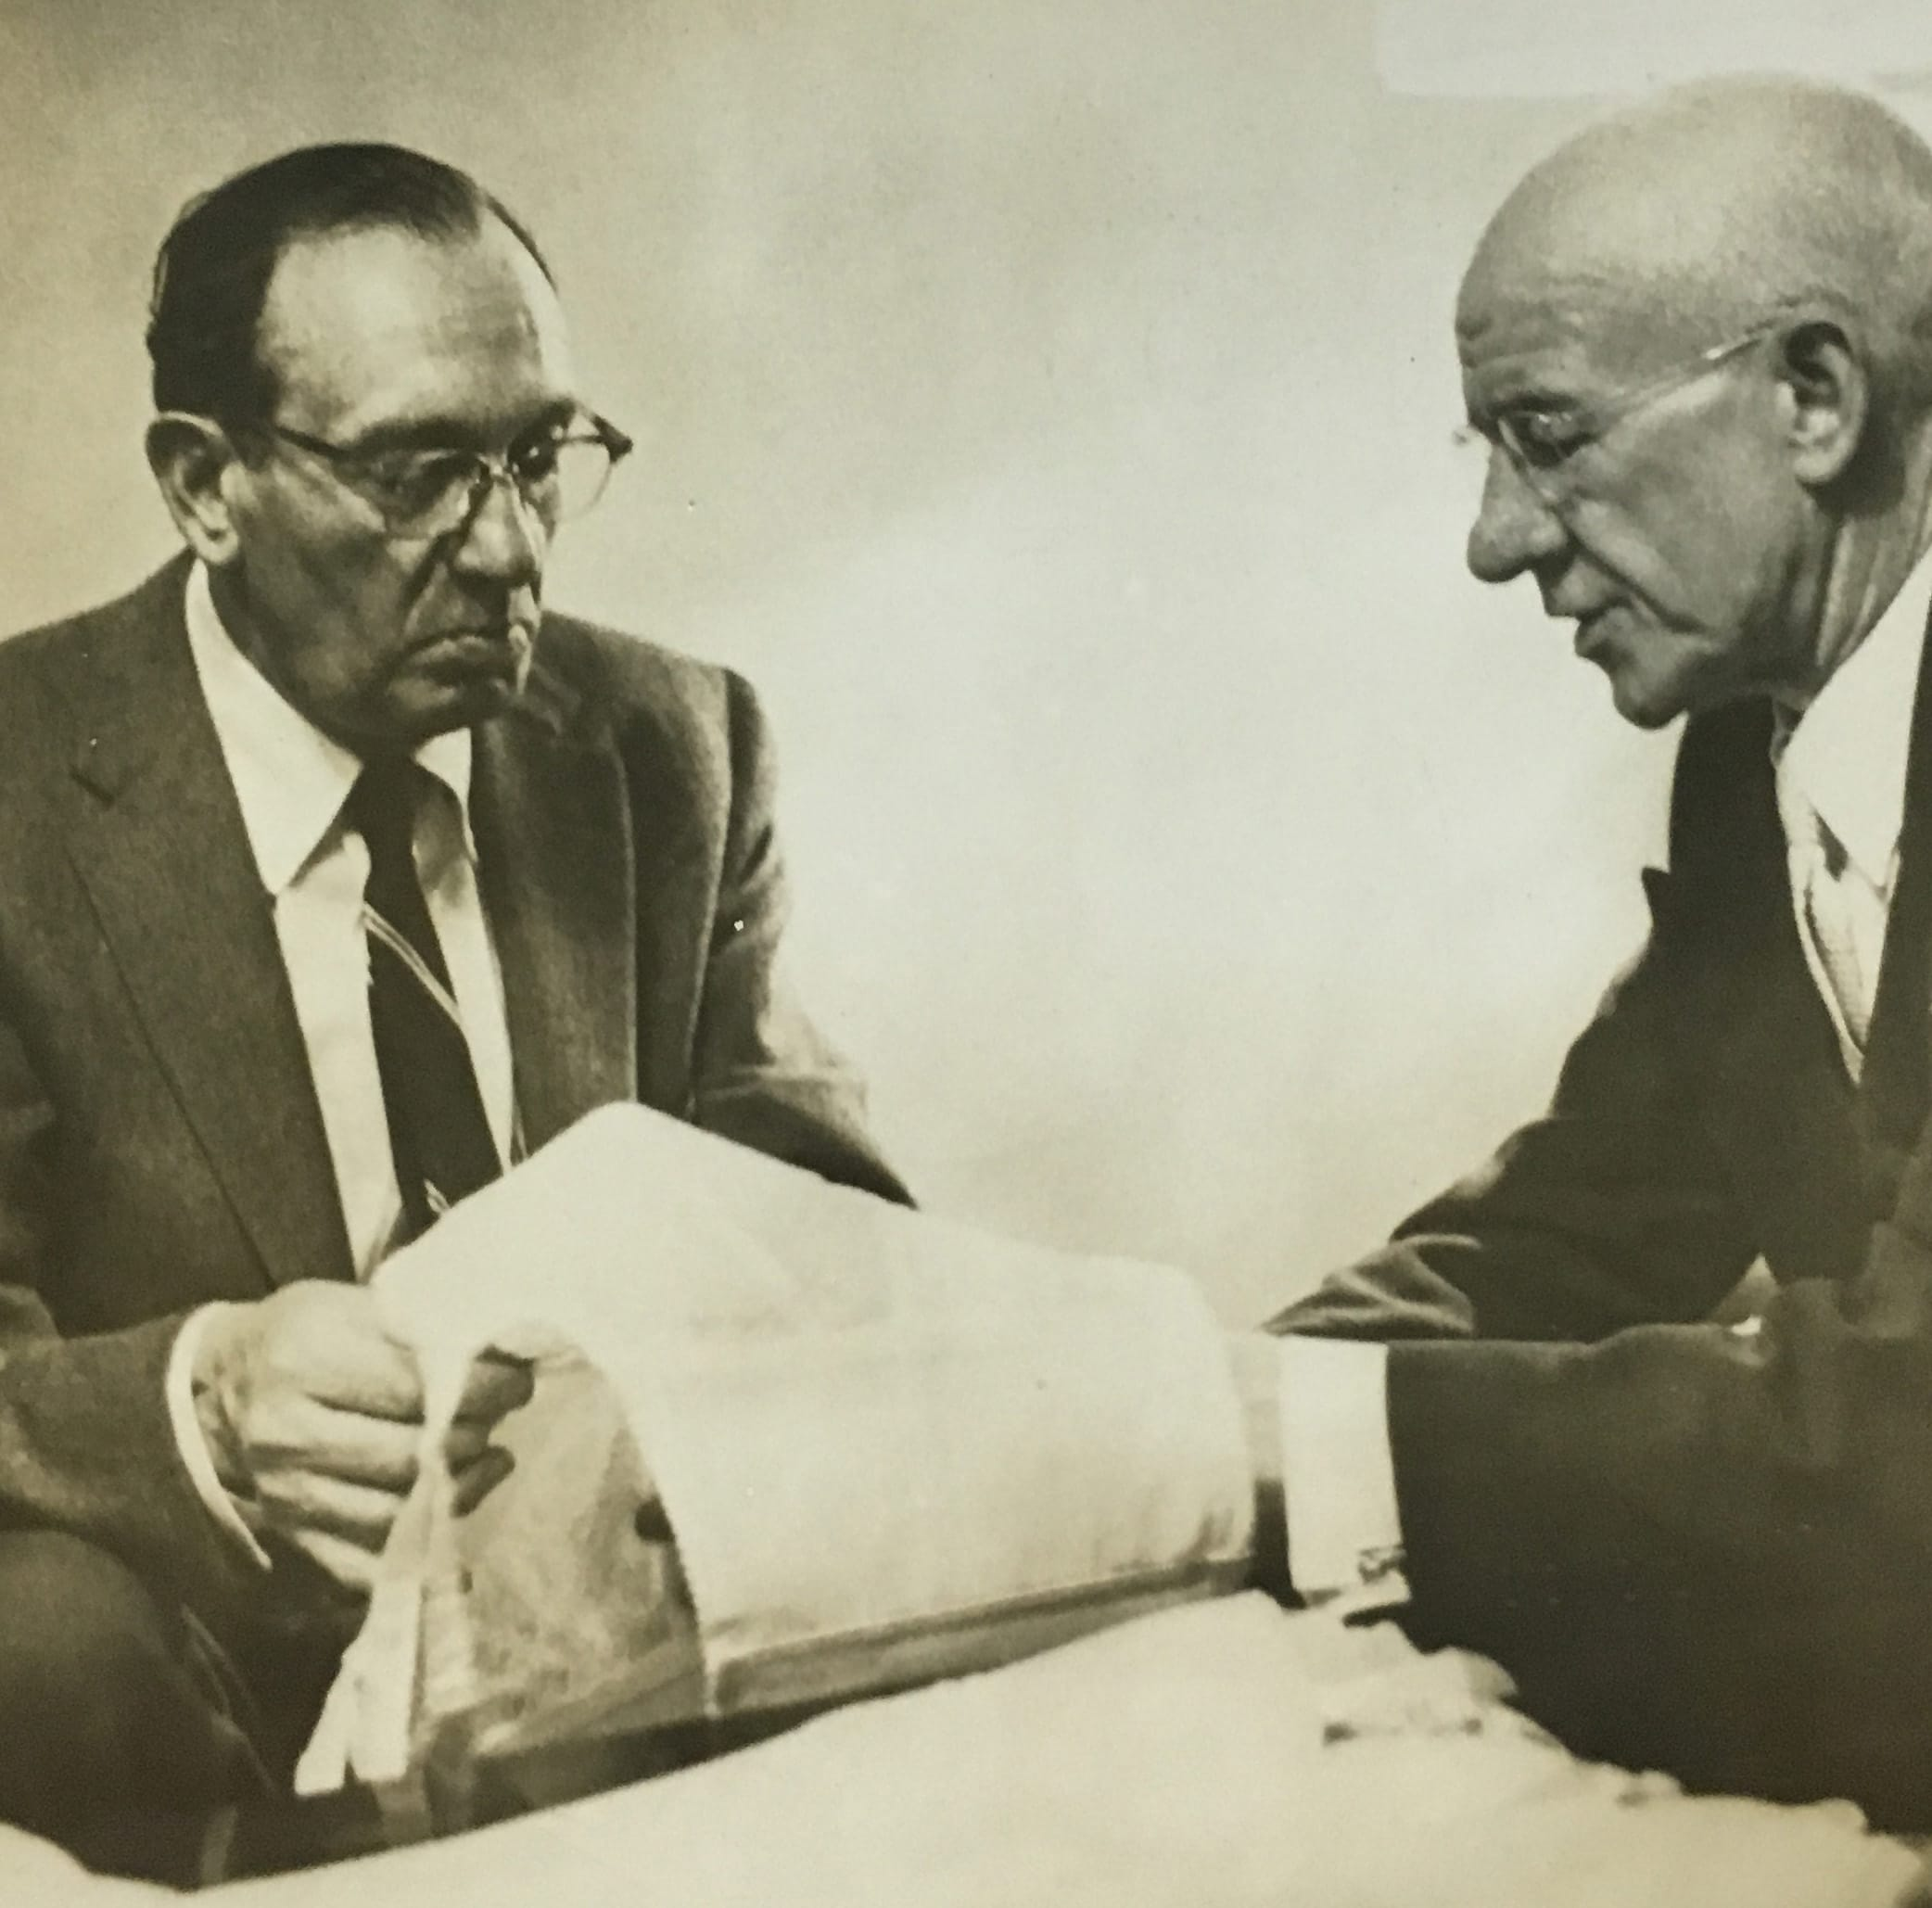 Irving with one of his salesman, 1951